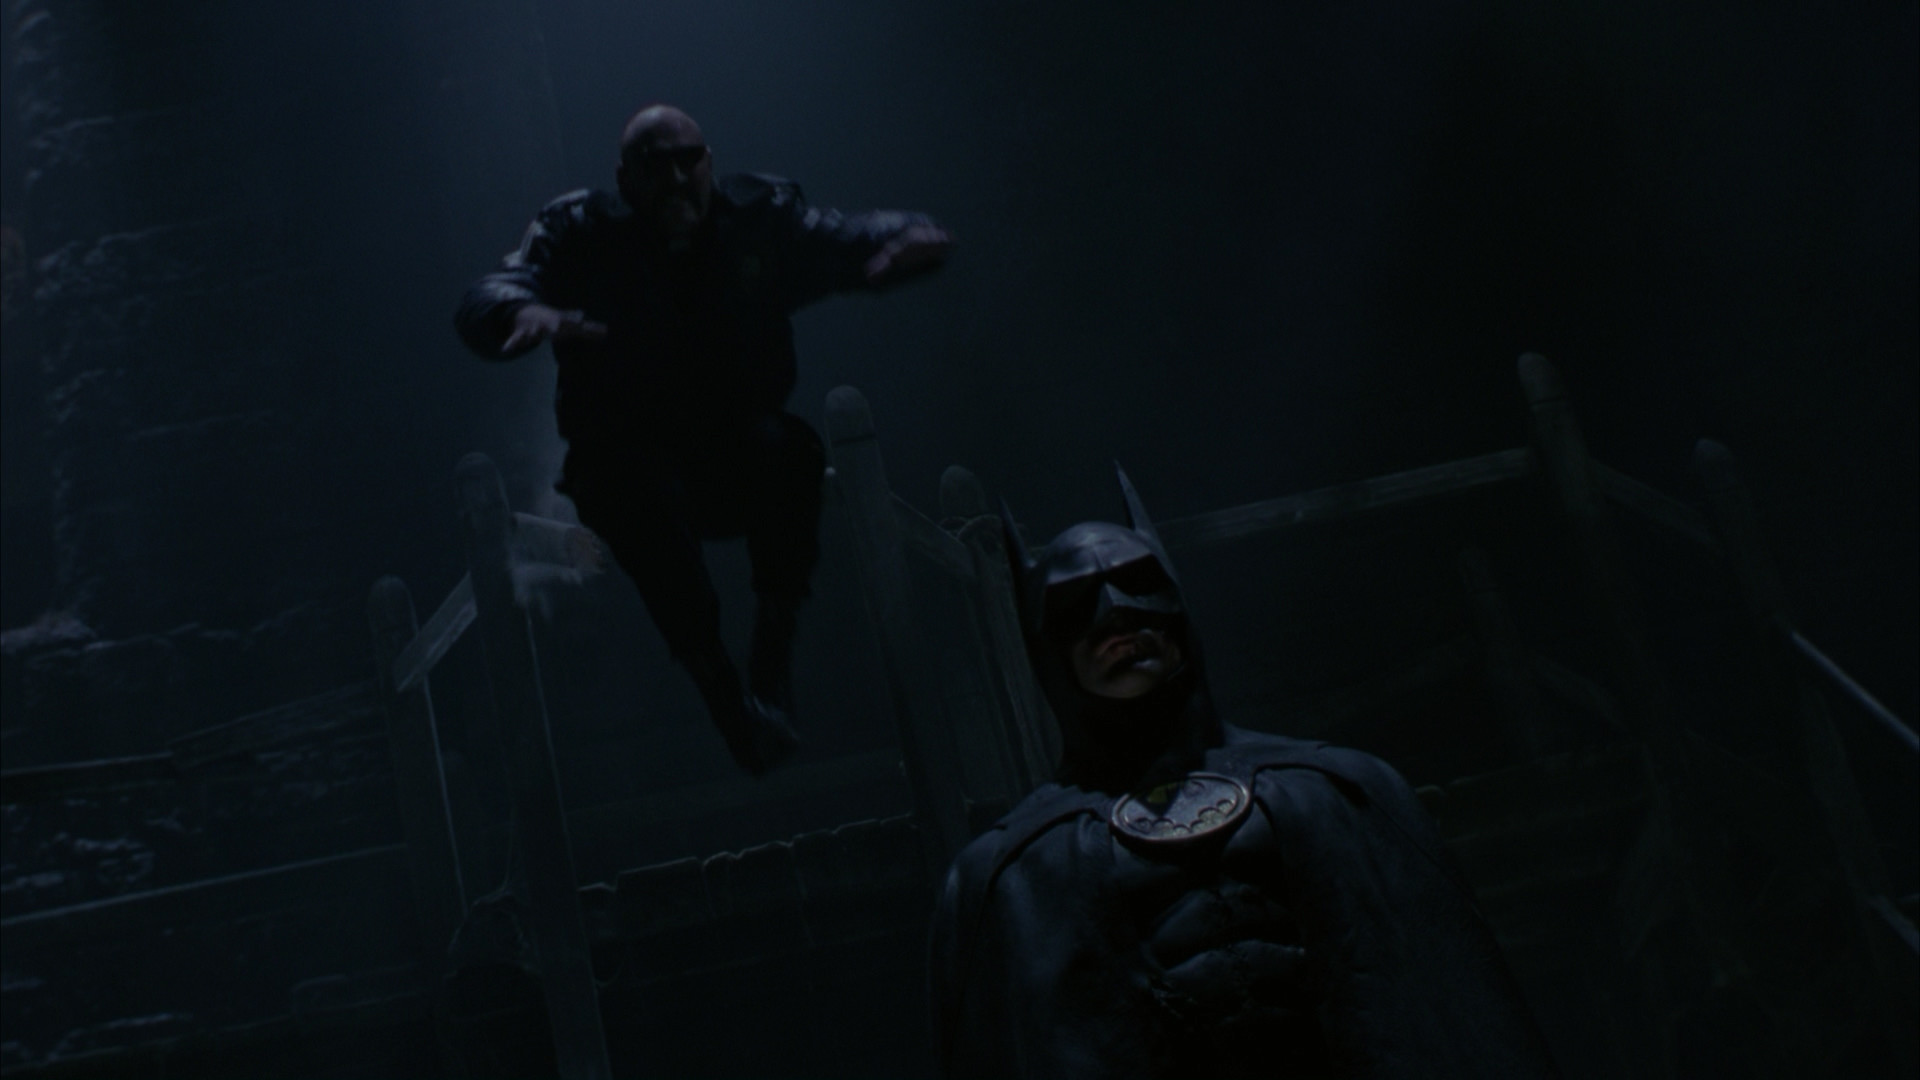 1920x1080 Lawrence leaping at Batman at the Gotham Cathedral